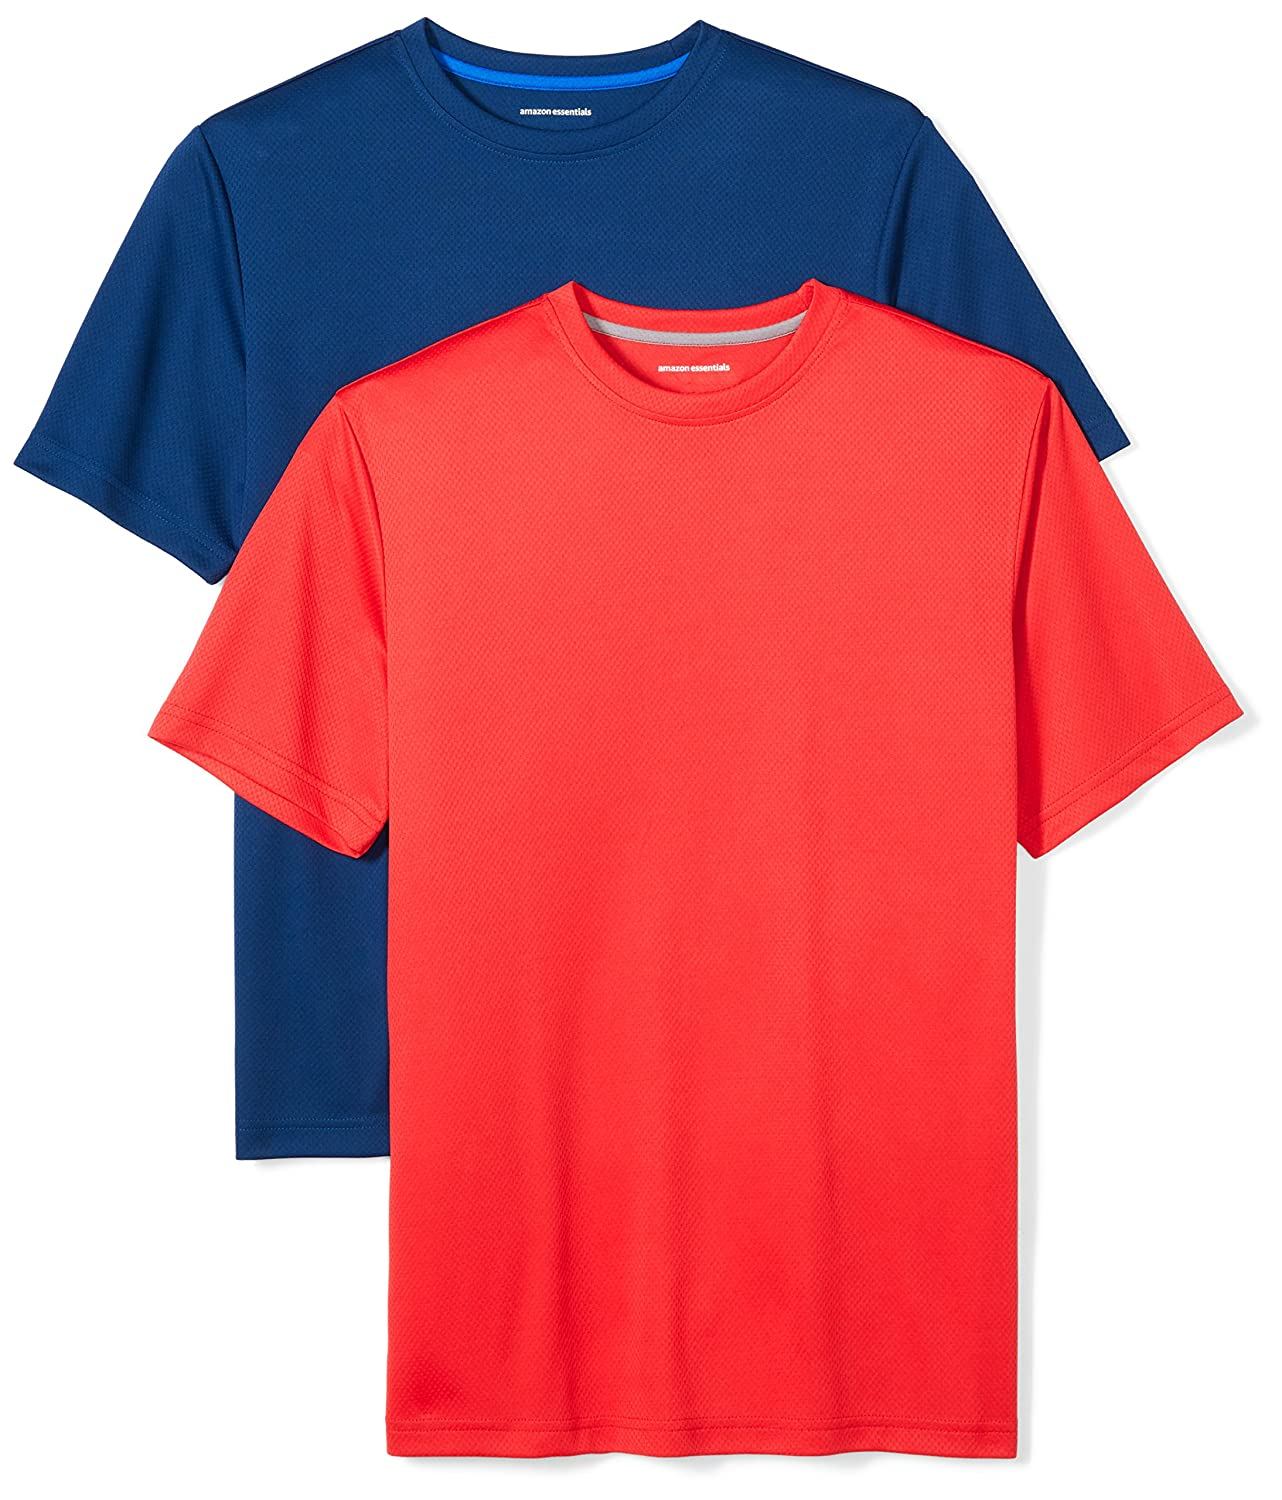 Amazon Essentials Men's 2-Pack Performance Short-Sleeve T-Shirts 13138